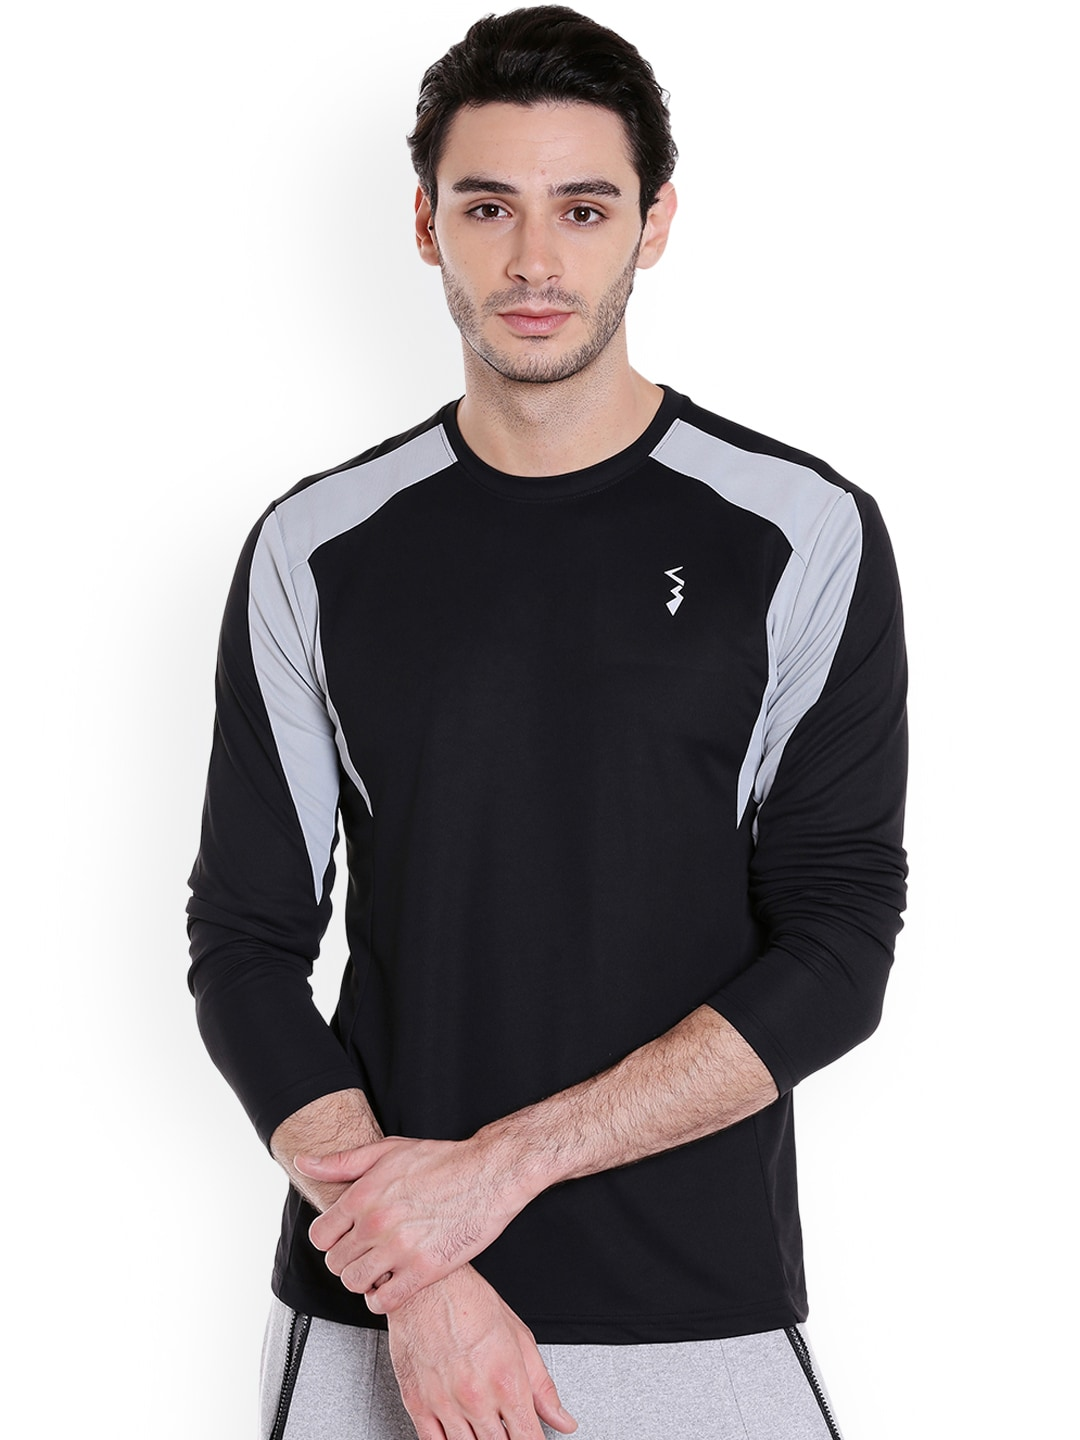 428bcc3d24a5 Campus Sutra - Buy Campus Sutra Clothing Online in India